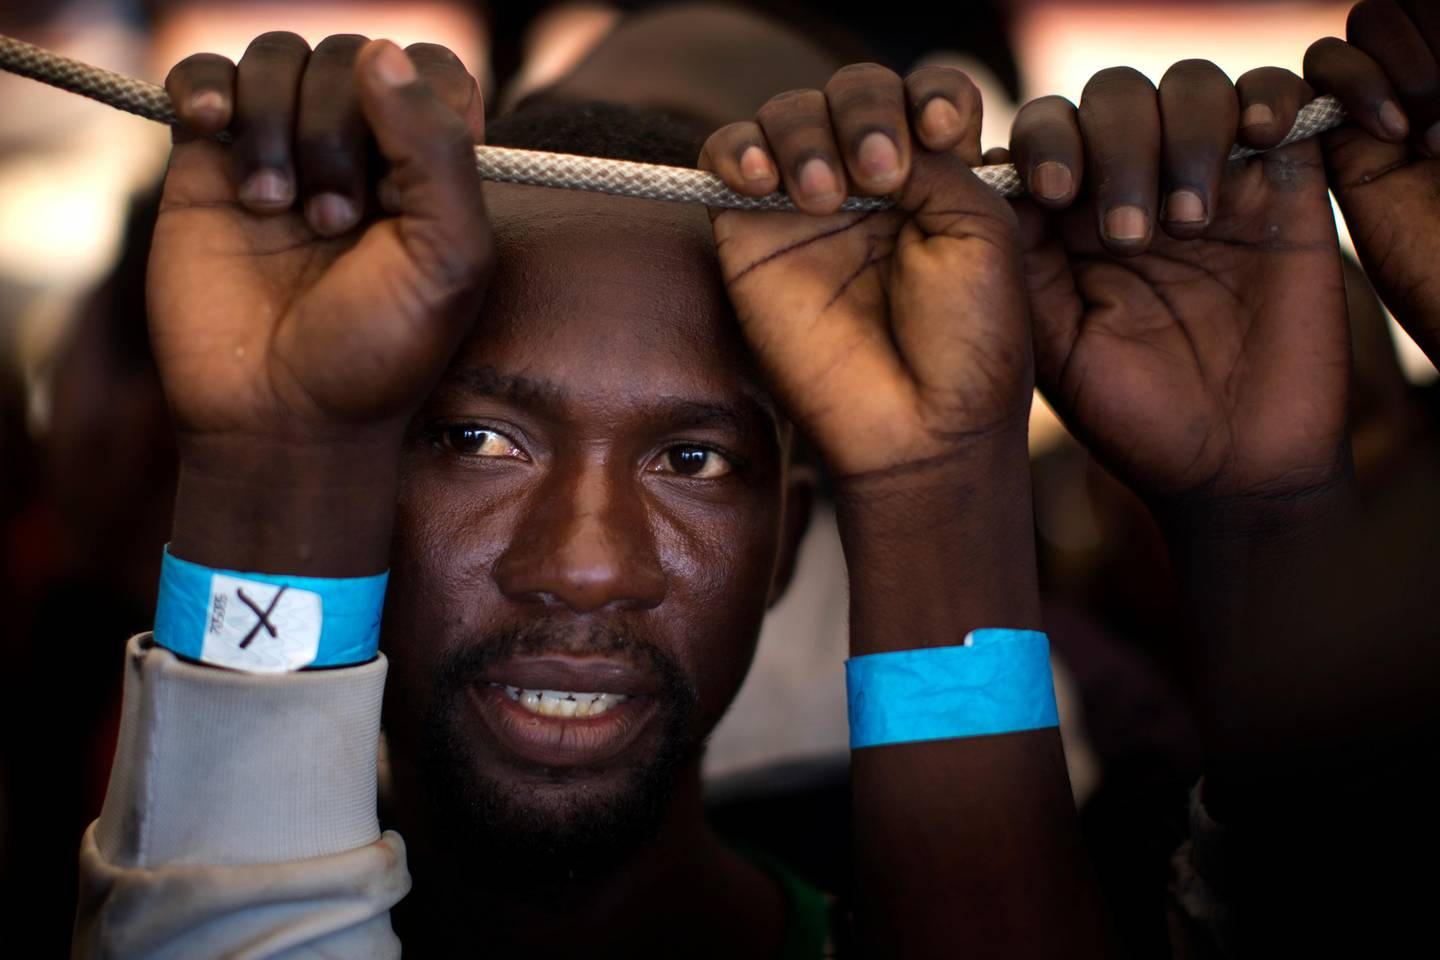 FILE - In this June 17, 2017 file photo, Samuel, 25, from Nigeria, waits his turn to leave the Golfo Azzurro rescue vessel, after being rescued from a packed boat from Libya, by members of Proactive Open Arms, as they arrive at the port of Pozzallo, south of Sicily, Italy. Under a deal backed by Italy, Libya��������s struggling government in Tripoli has paid militias that were once involved in smuggling migrants to now prevent migrants from crossing the Mediterranean to Europe, one reason for a dramatic drop in the traffic, according to militia and security officials. (AP Photo/Emilio Morenatti, File)